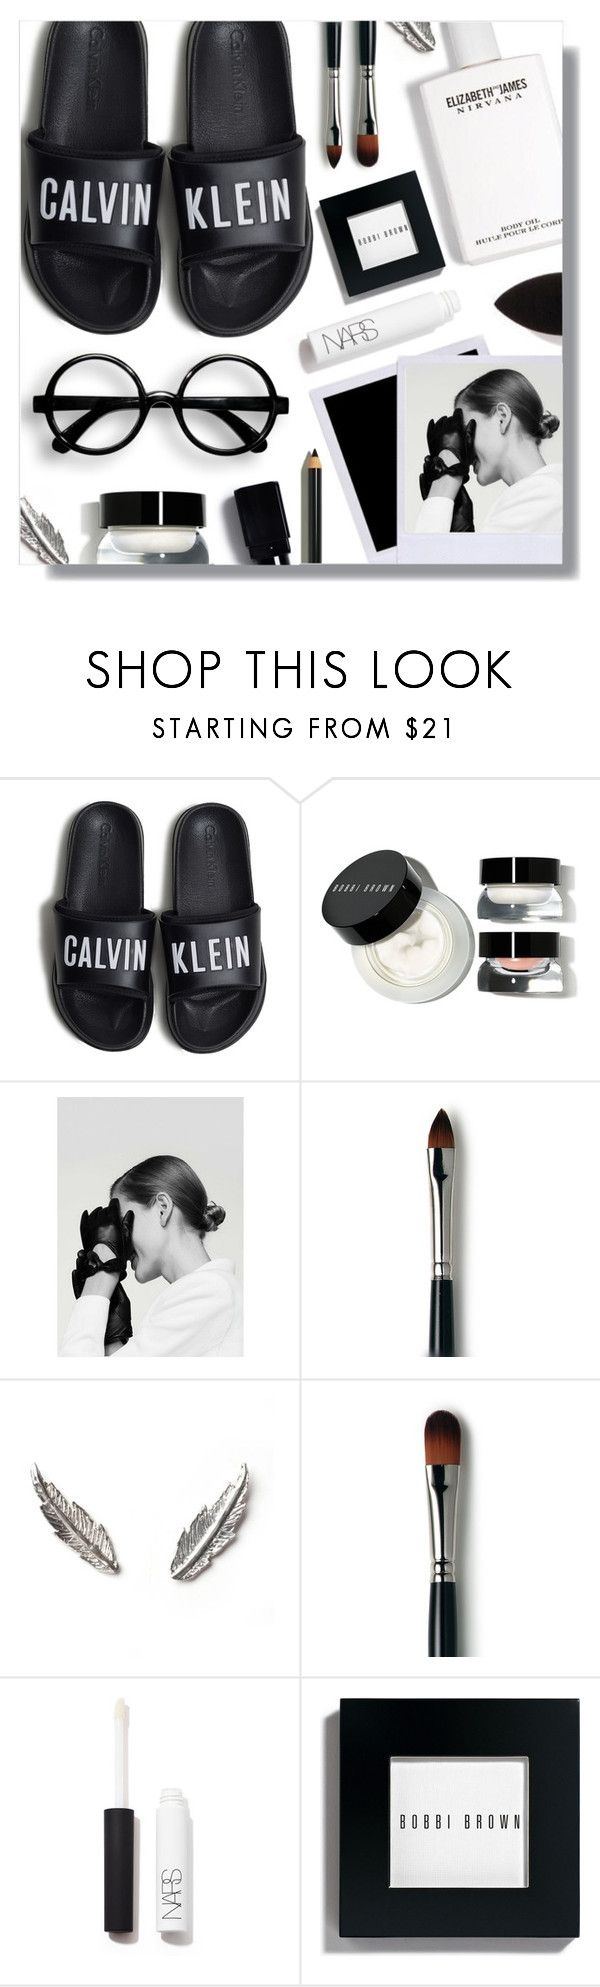 """""""Get ready for 2018"""" by peony-and-python ❤ liked on Polyvore featuring beauty, Calvin Klein, Bobbi Brown Cosmetics, MANGO, Laura Mercier, LeiVanKash, NARS Cosmetics, beautyblender, allblack and newyear"""